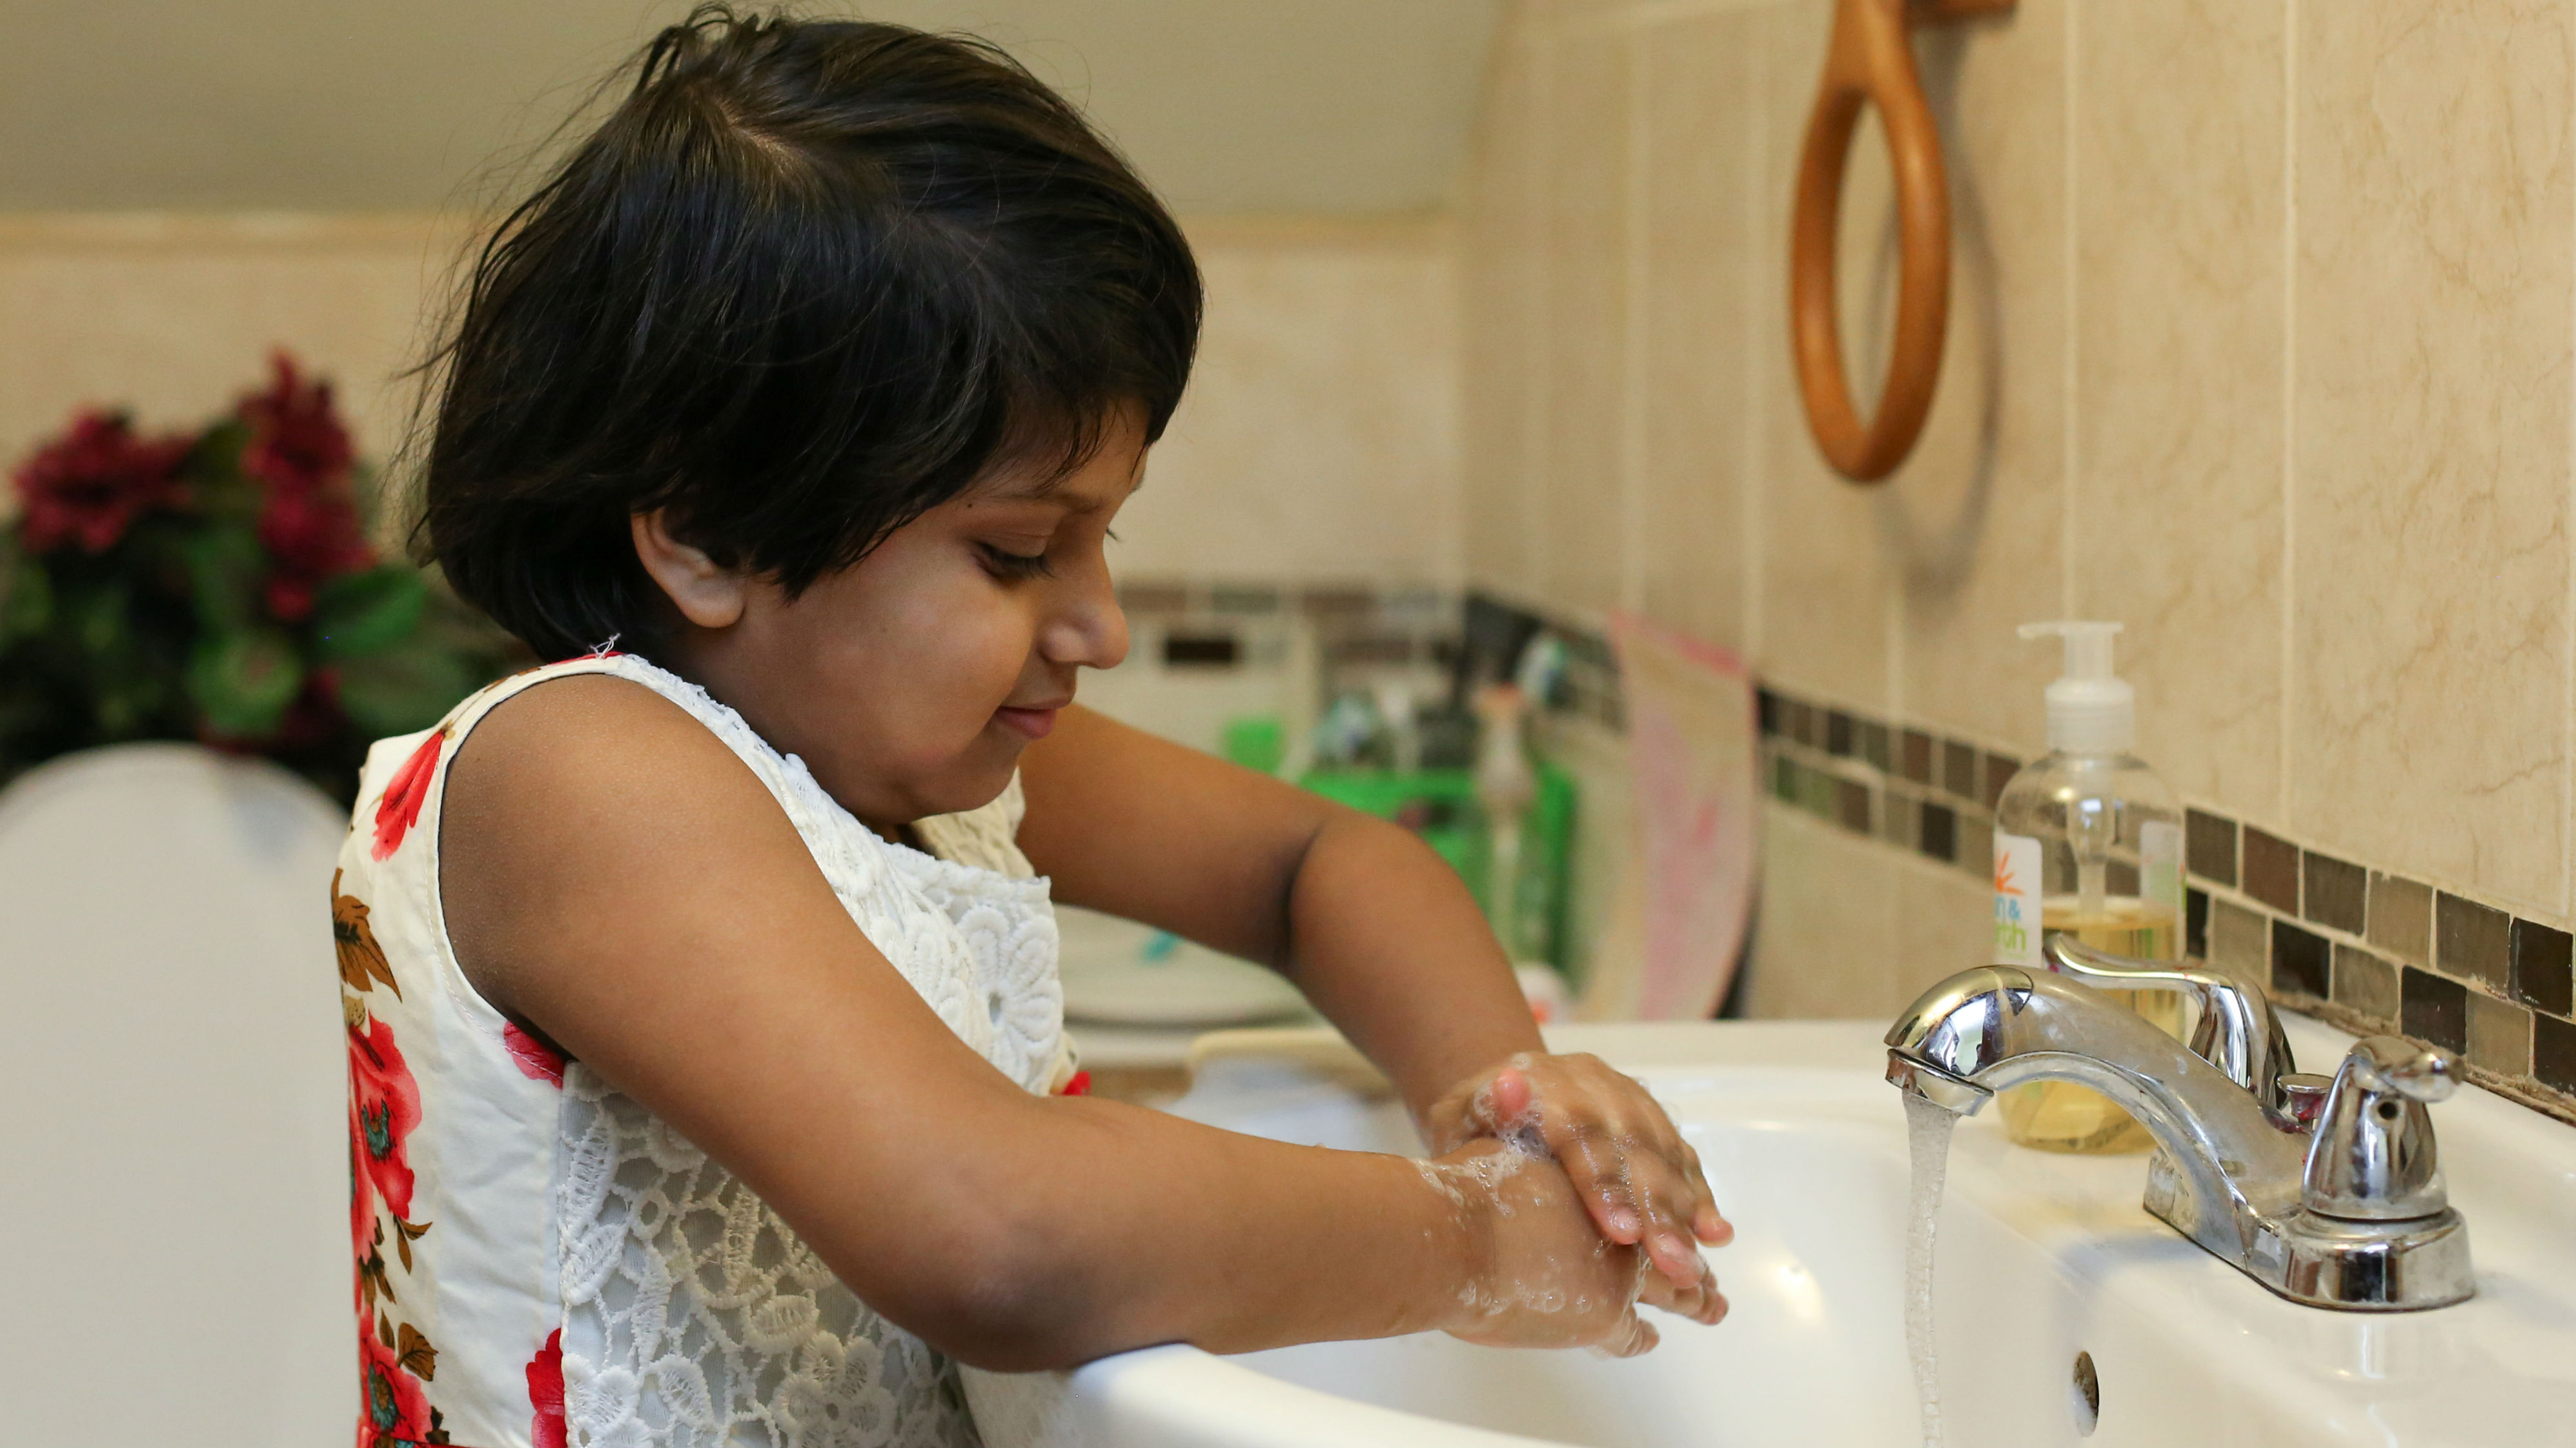 A girl washing her hands in a sink.